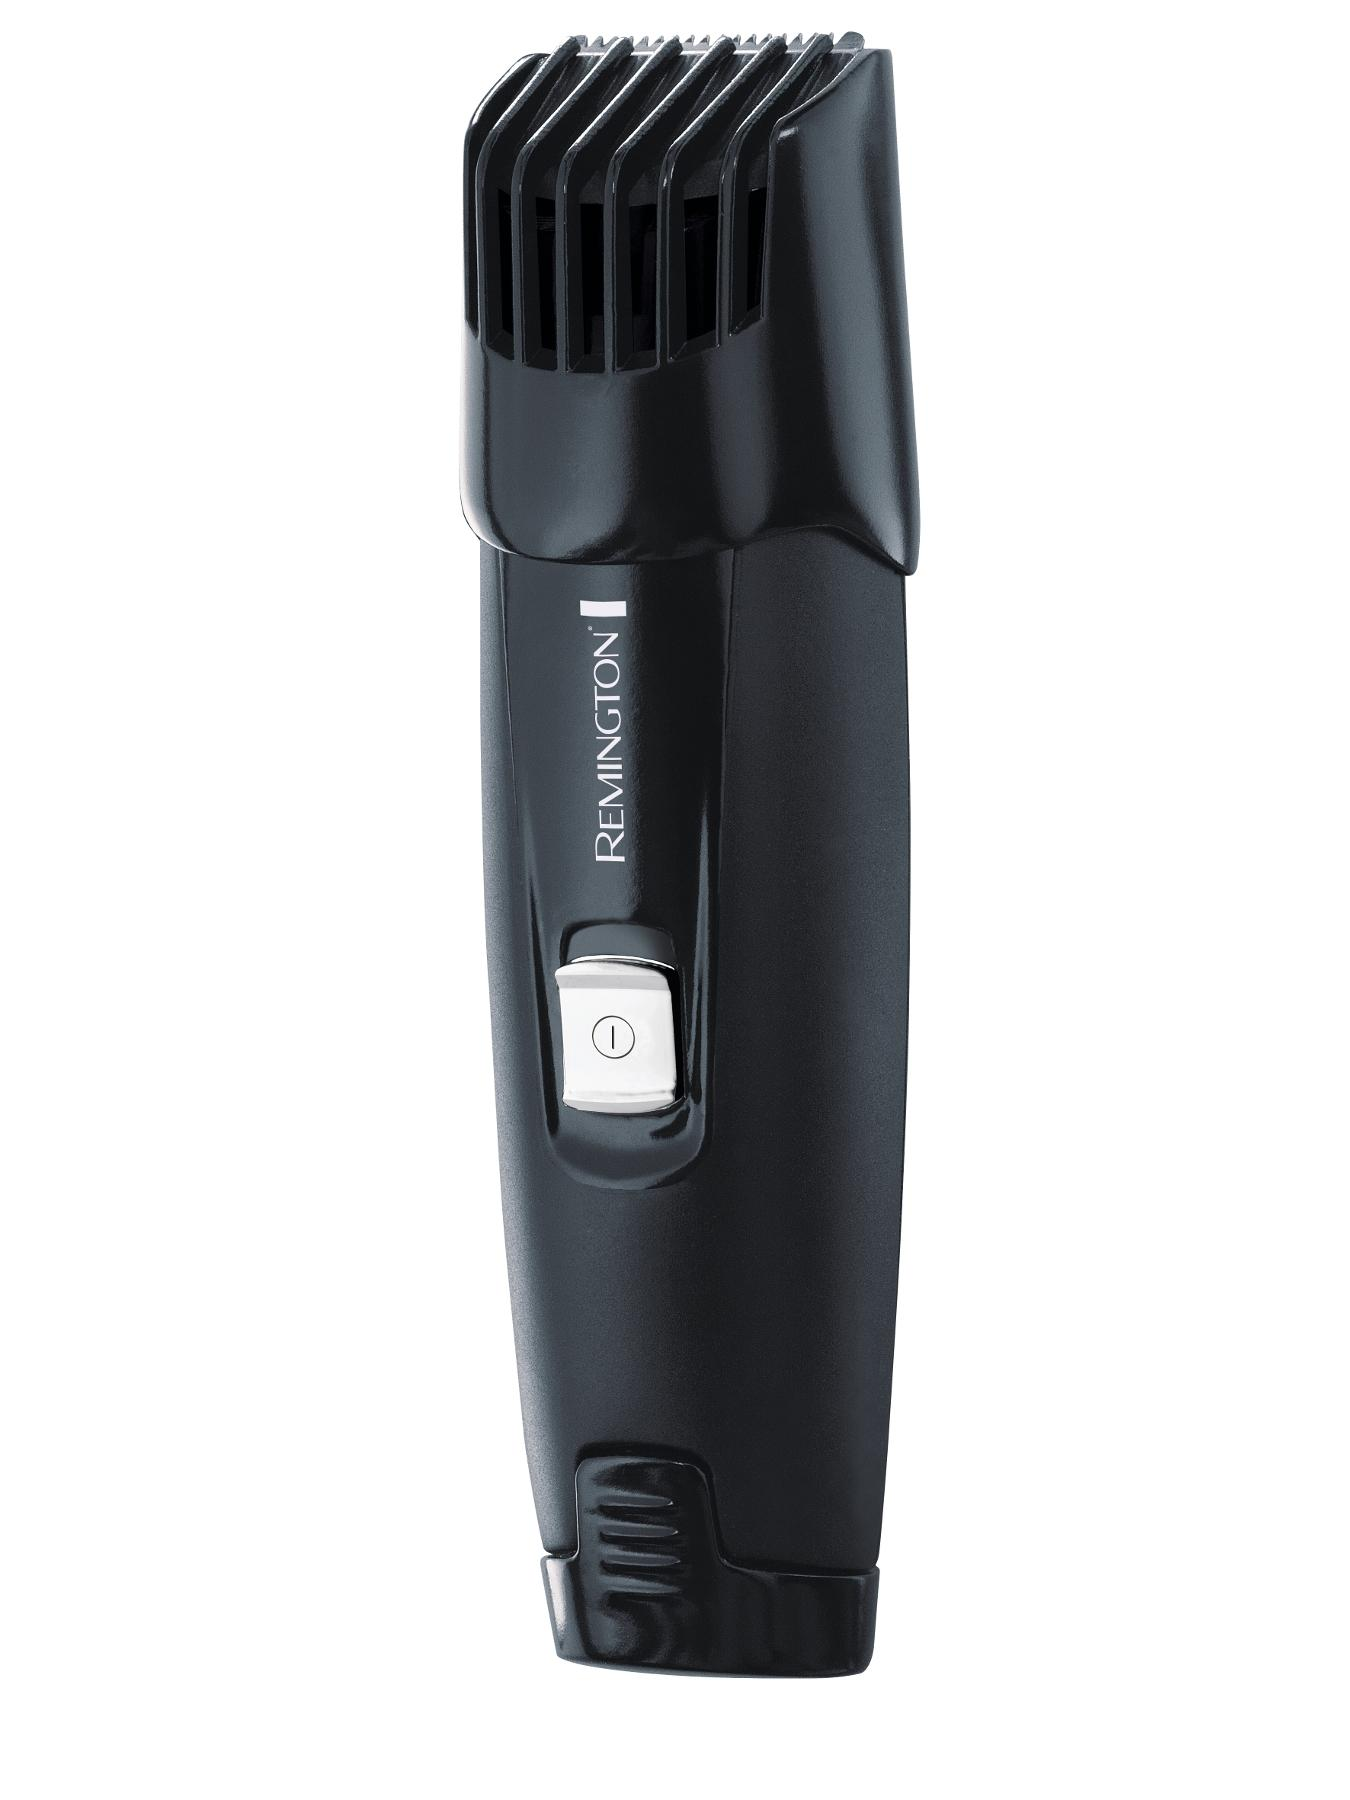 MB4010 Horizon Beard Trimmer & FREE Lynx Gift Set*